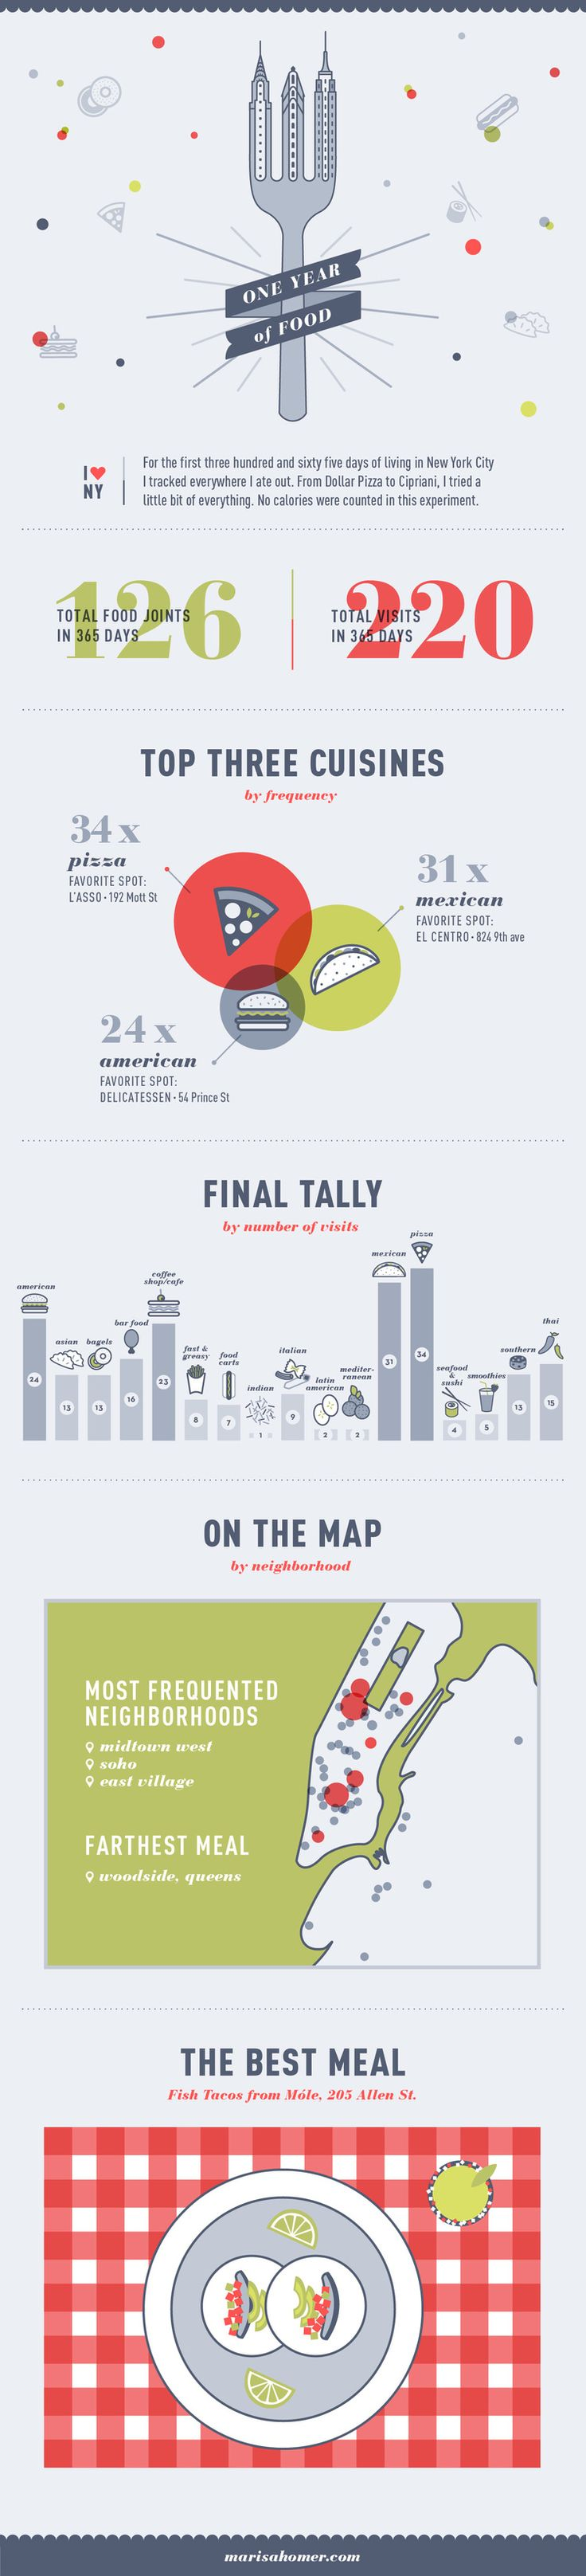 Unique Infographic Design, One Year Of Food @parkchungi #Infographic #Design (http://www.pinterest.com/aldenchong/)